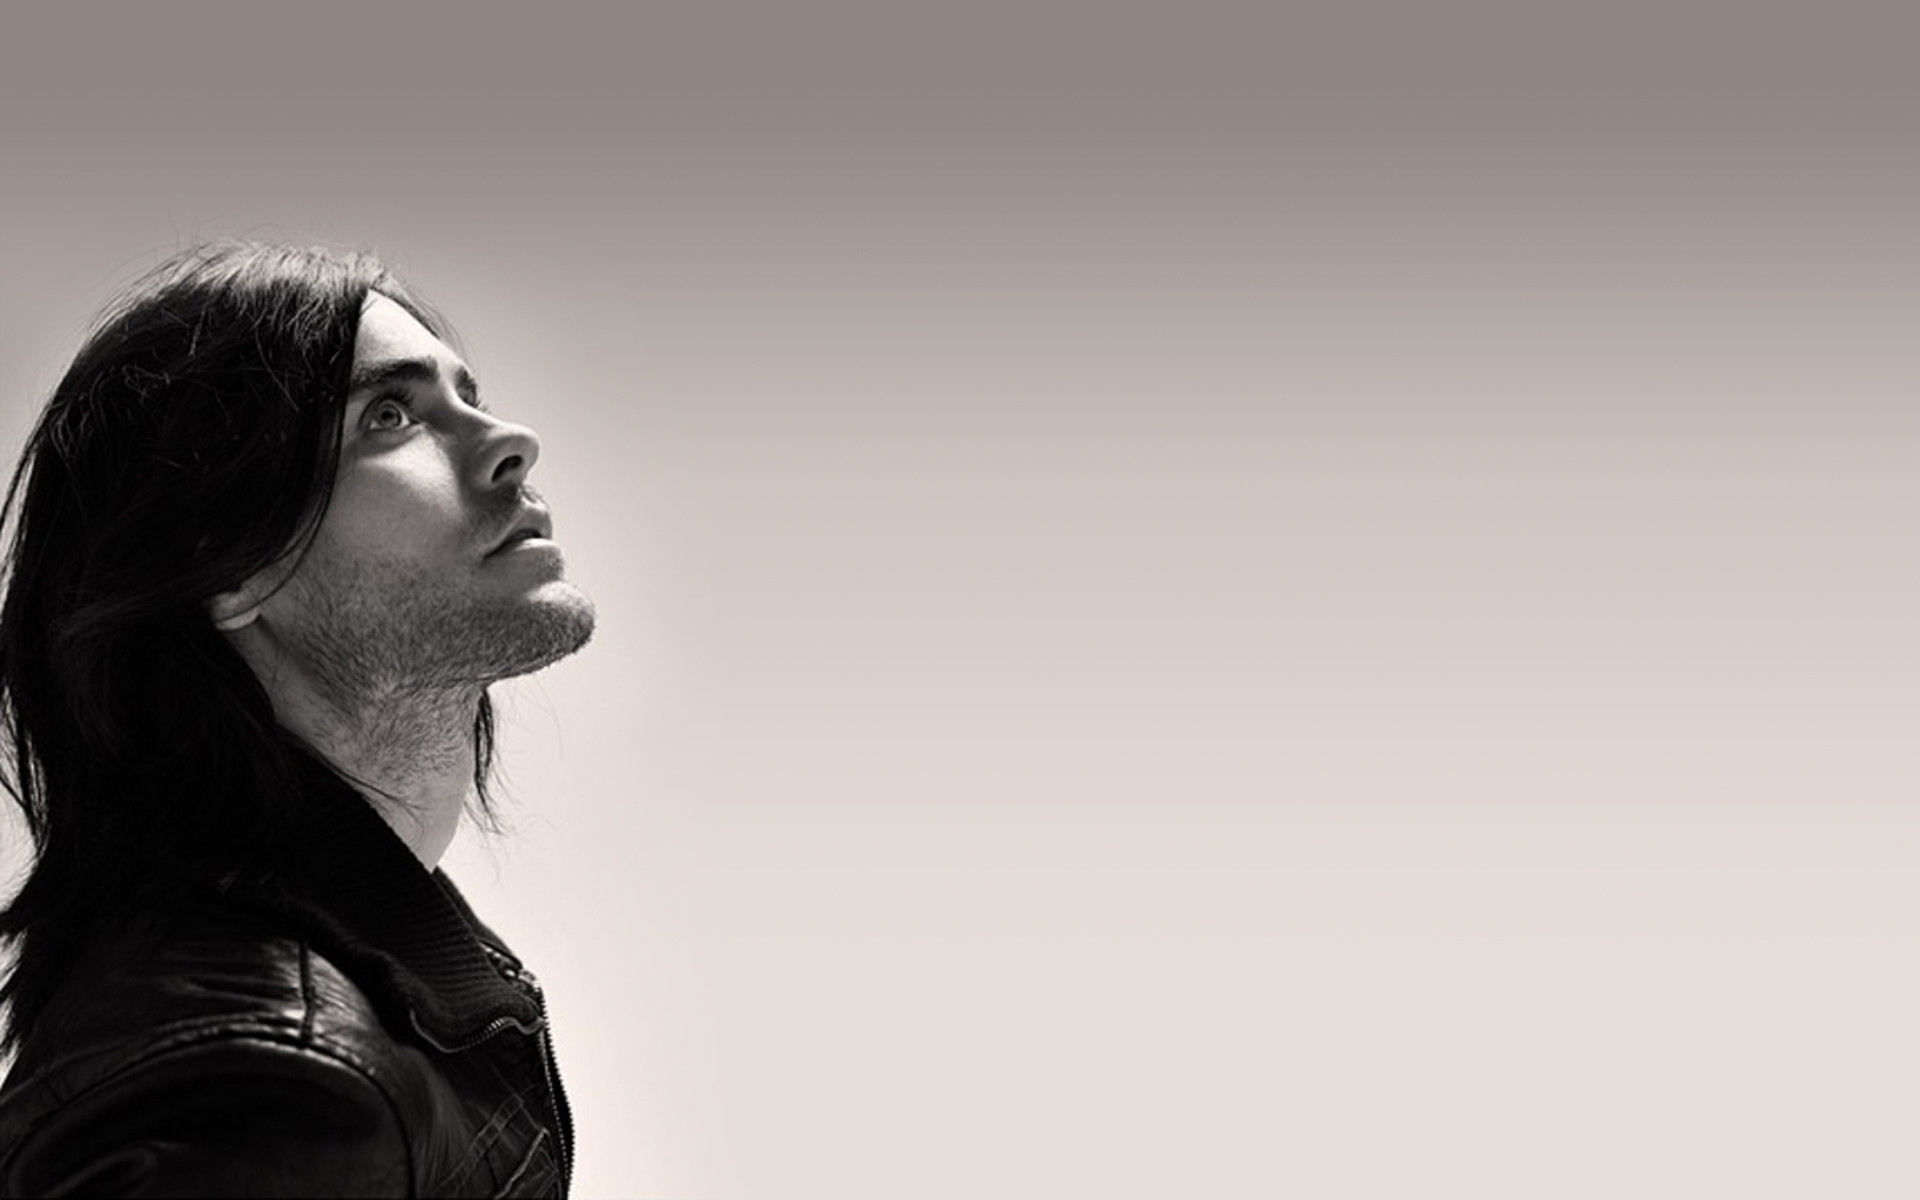 Jared Leto Backgrounds - Wallpaper, High Definition, High ...